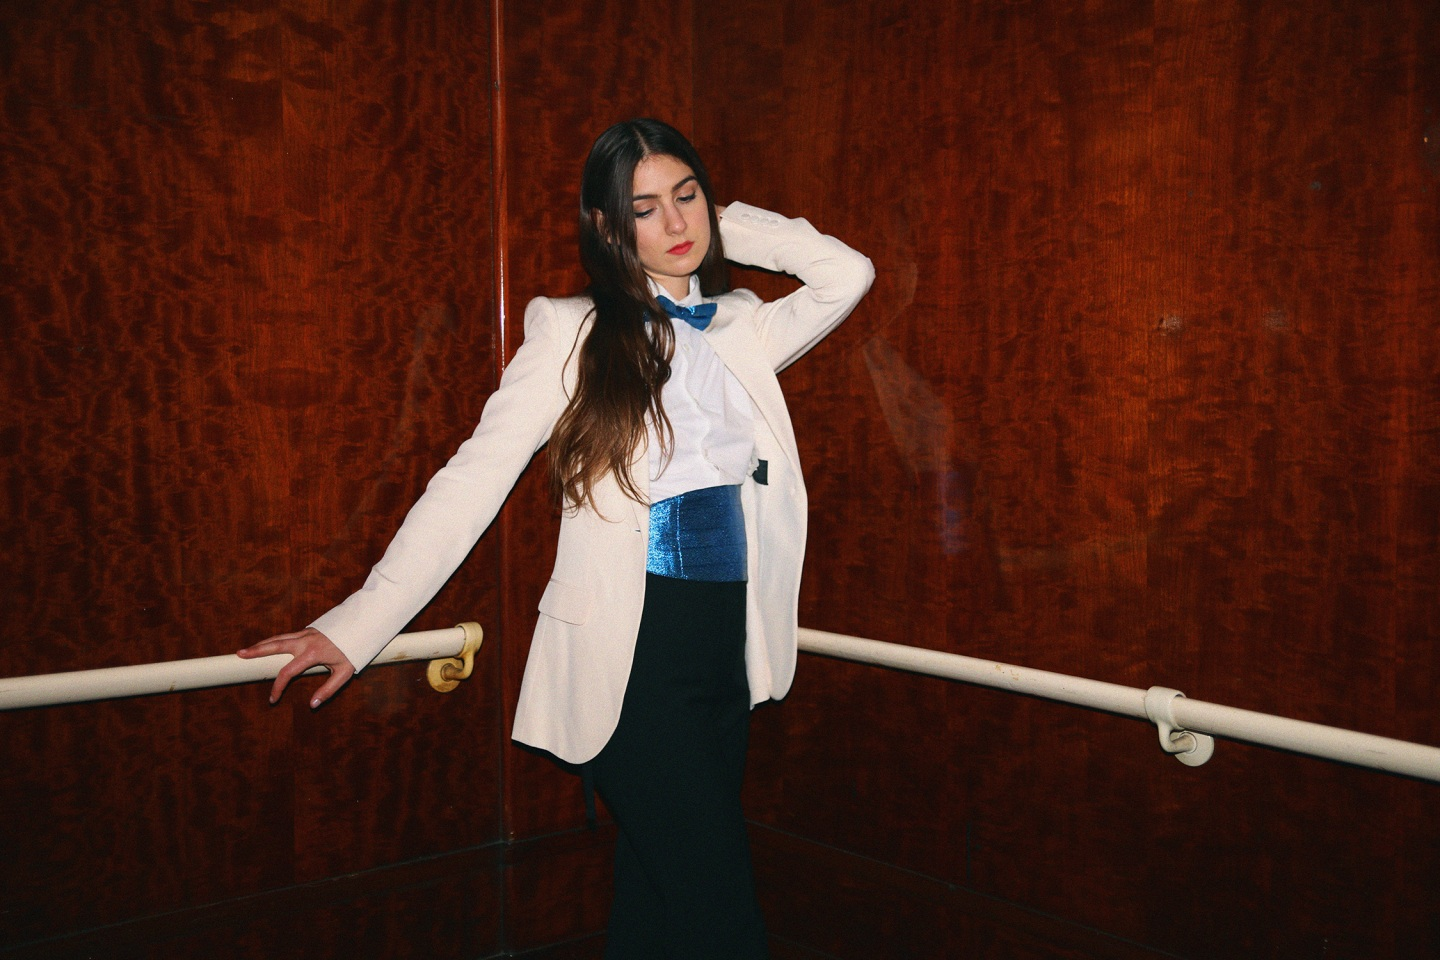 Weyes Blood still has hope for the world